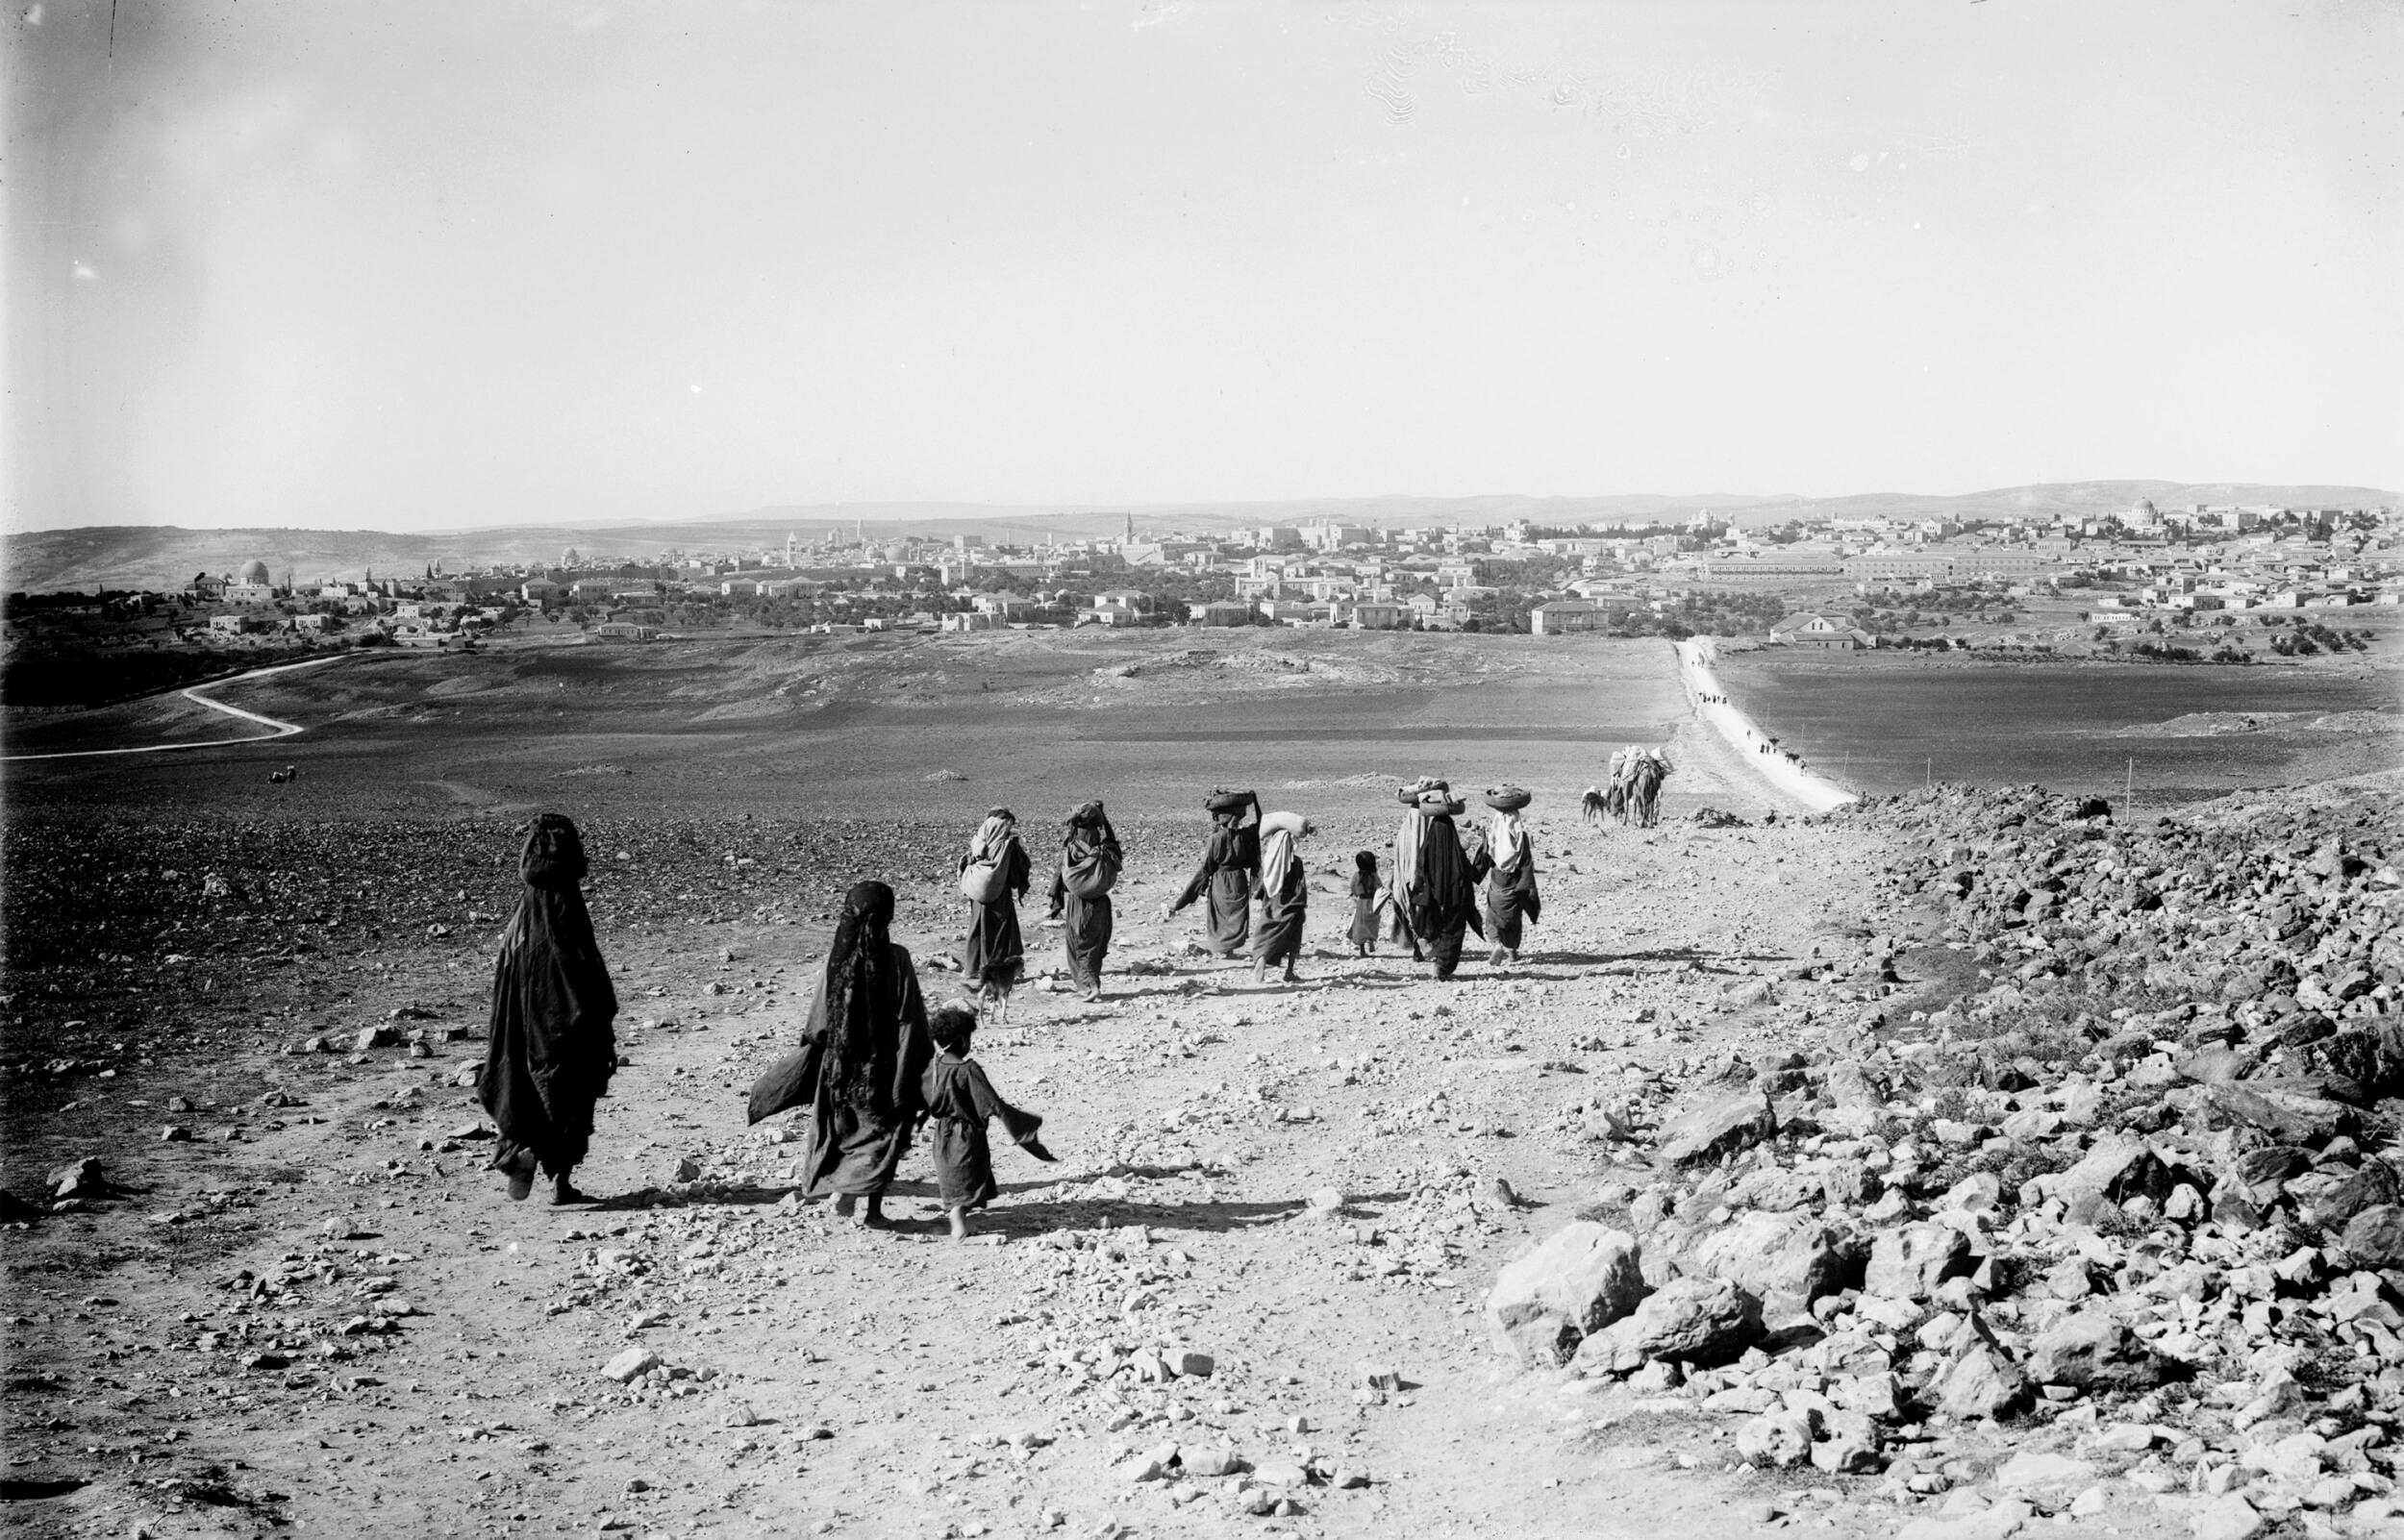 Jerusalem from the north, during the Mandate period, an image from Tom Suarez's book State of Terror